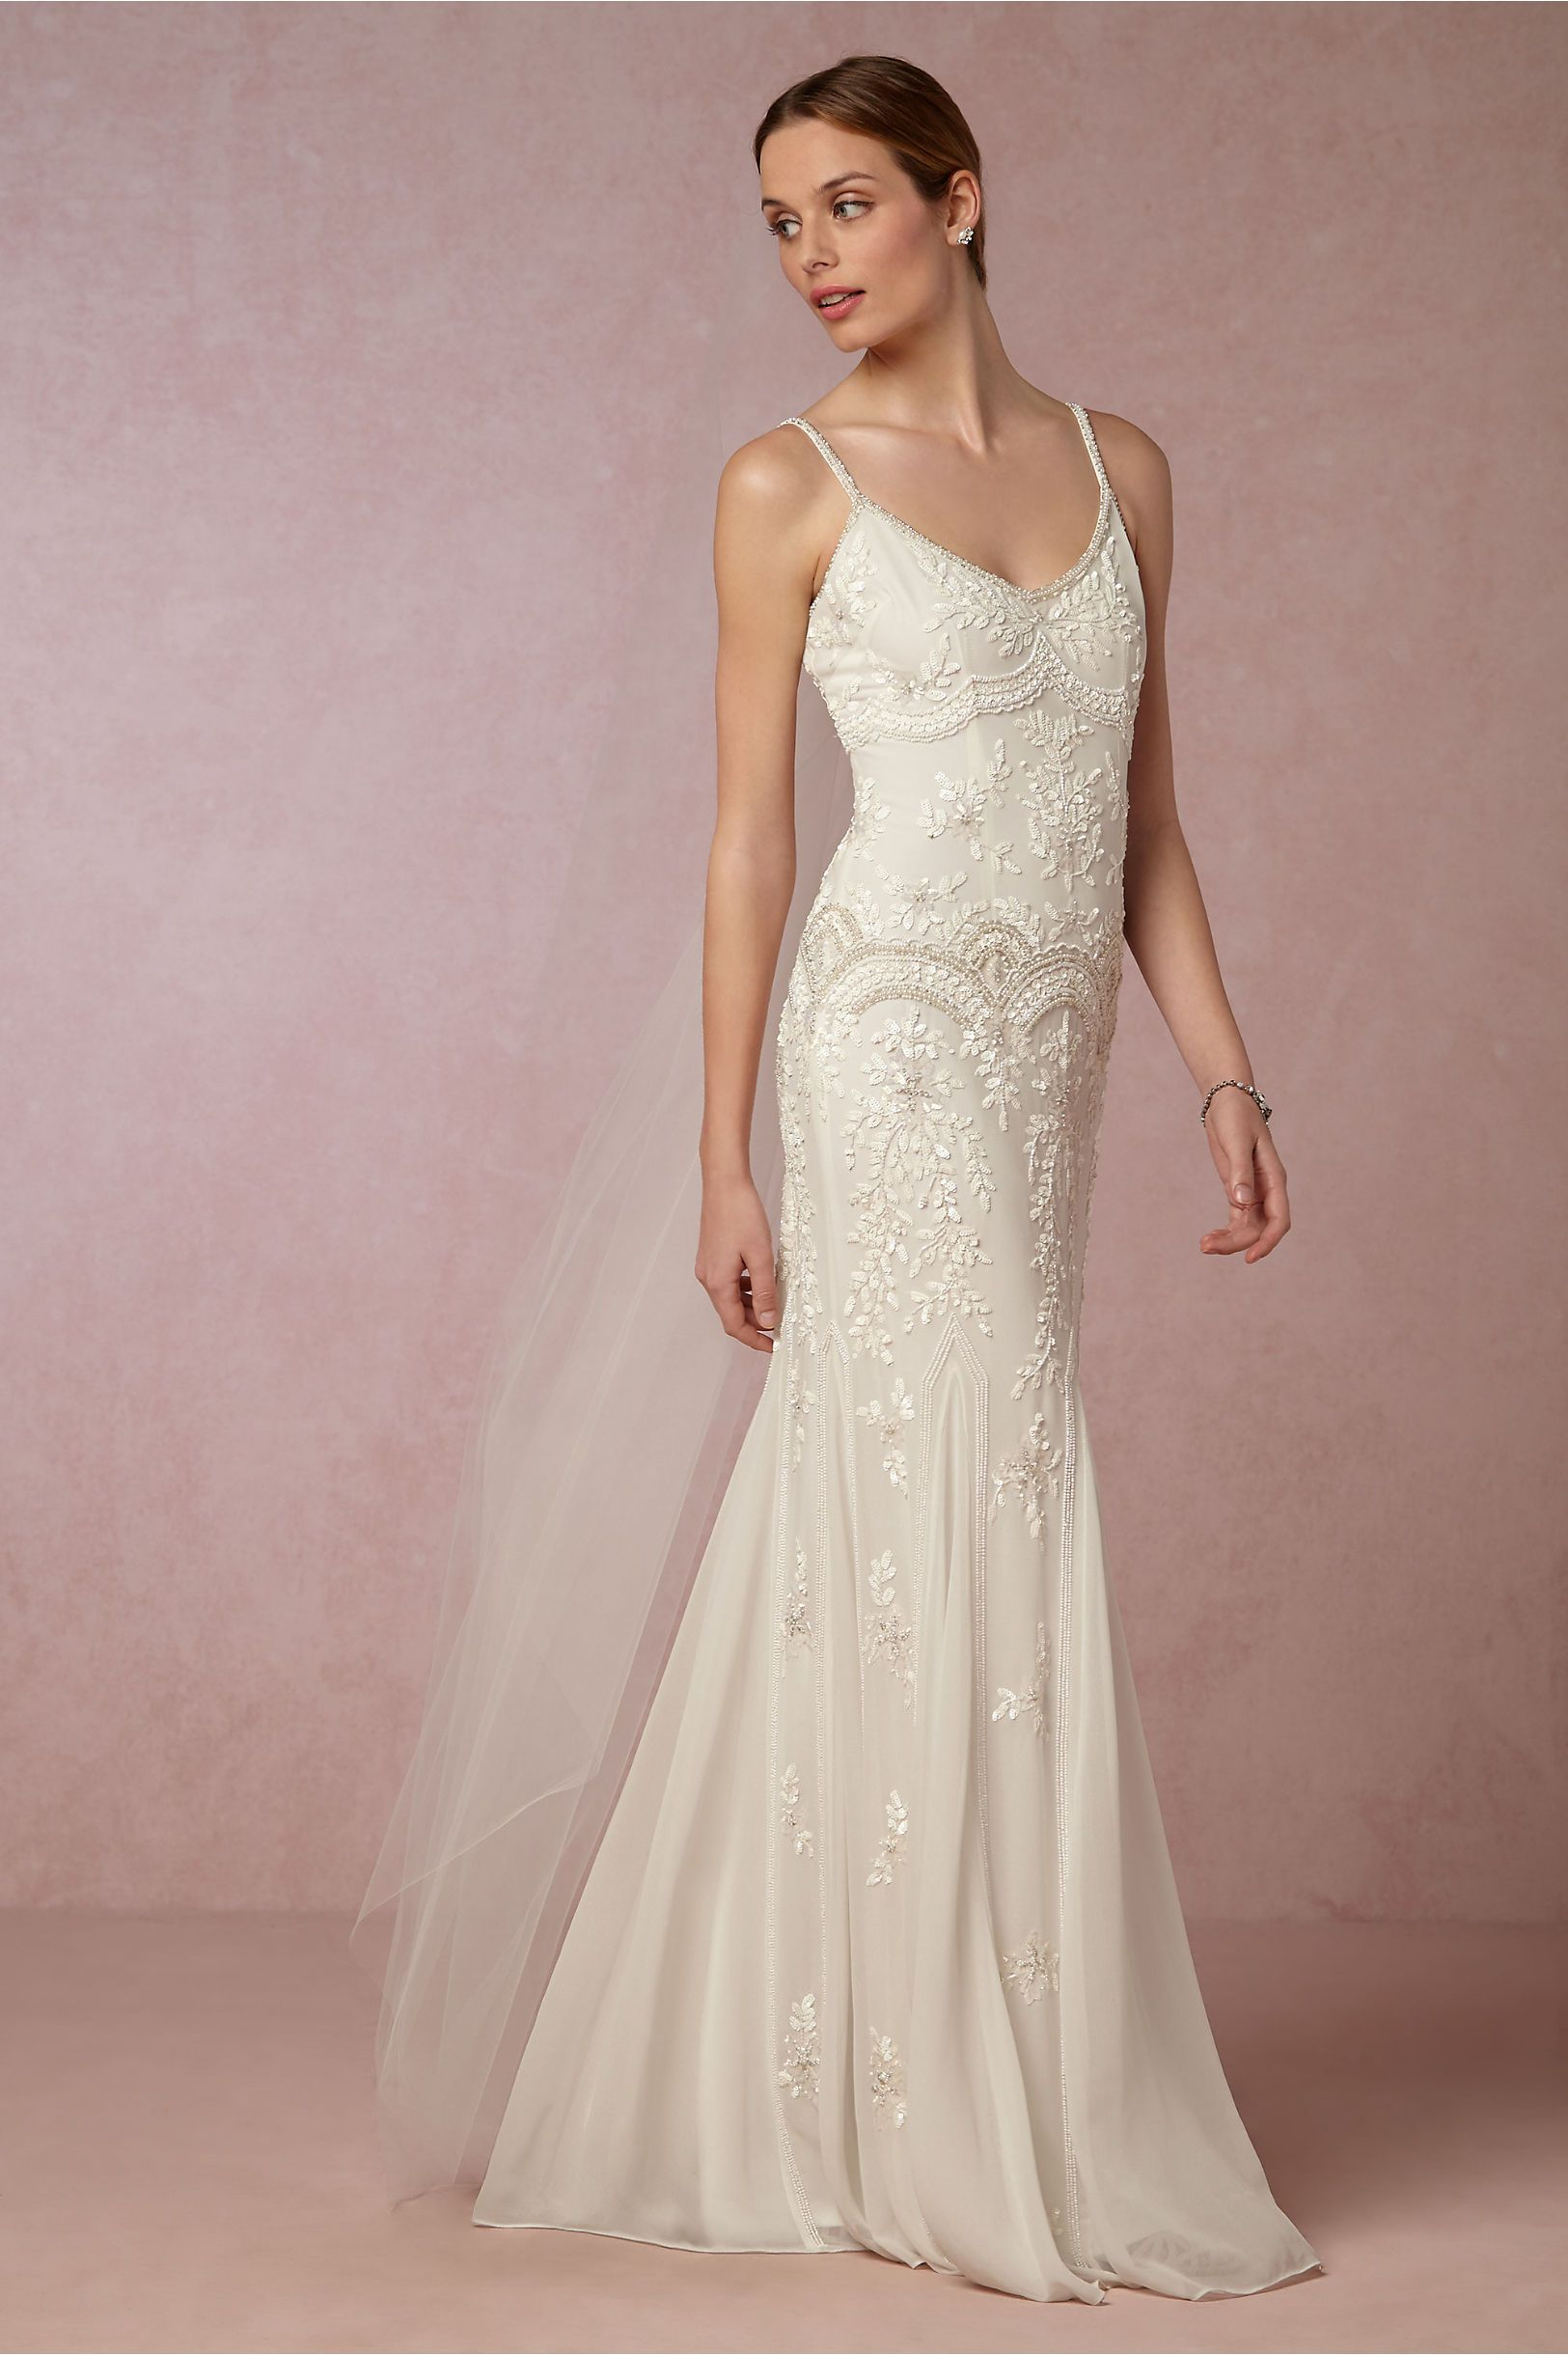 eb3efa37be0cc BHLDN's Mignon Naomi Gown in Ivory in 2019 | Products | Wedding ...